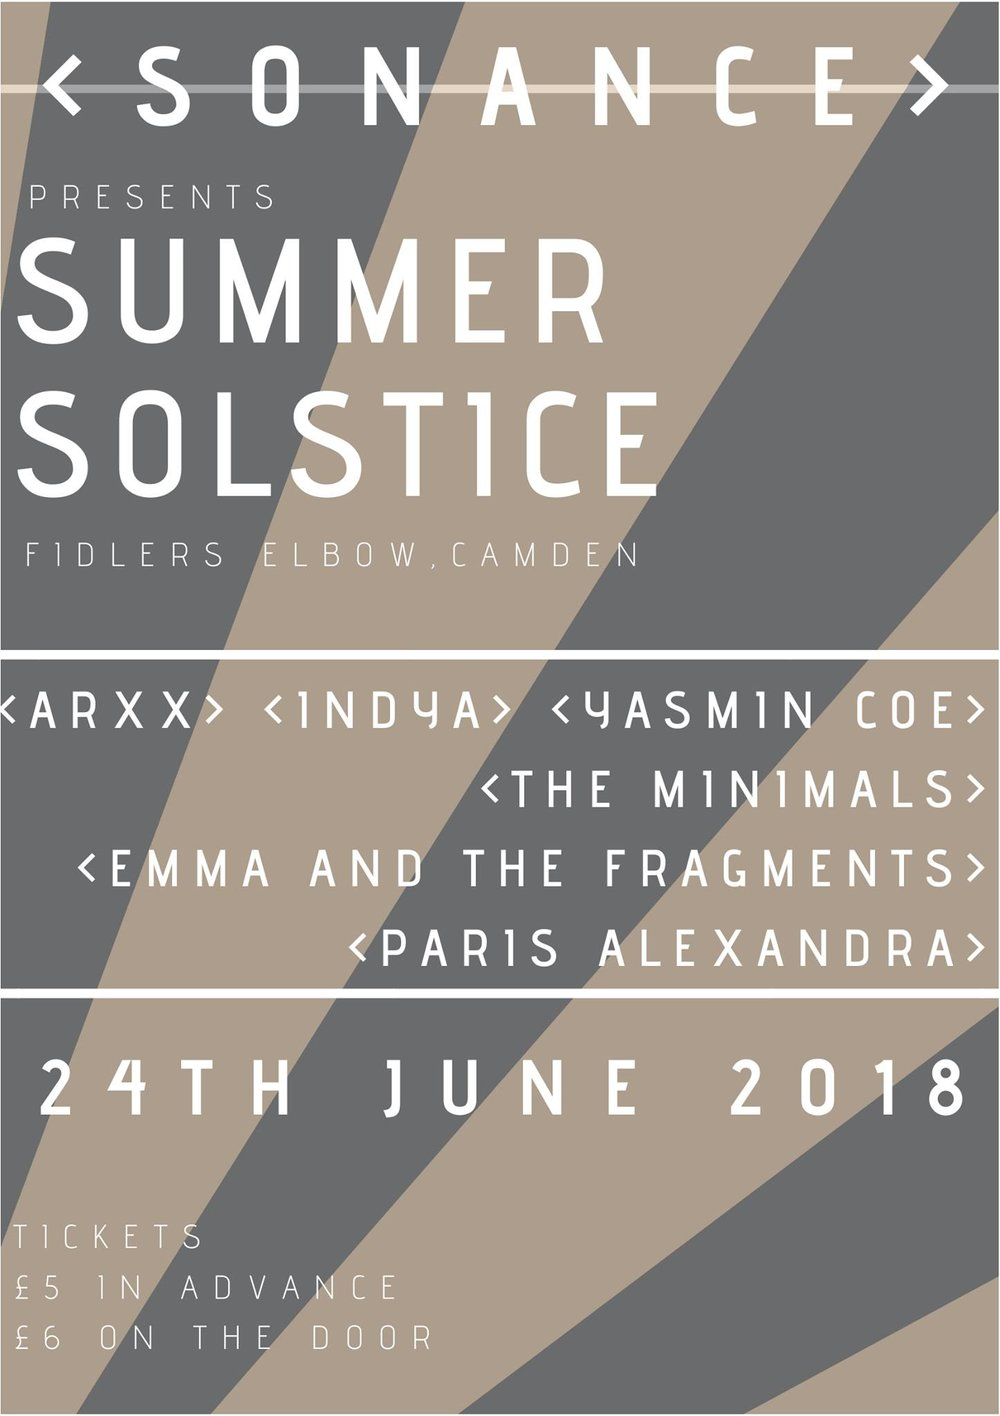 Sonance Presents ARXX, Yasmin Coe, Minimals, and more.. at The Fiddler's Elbow promotional image